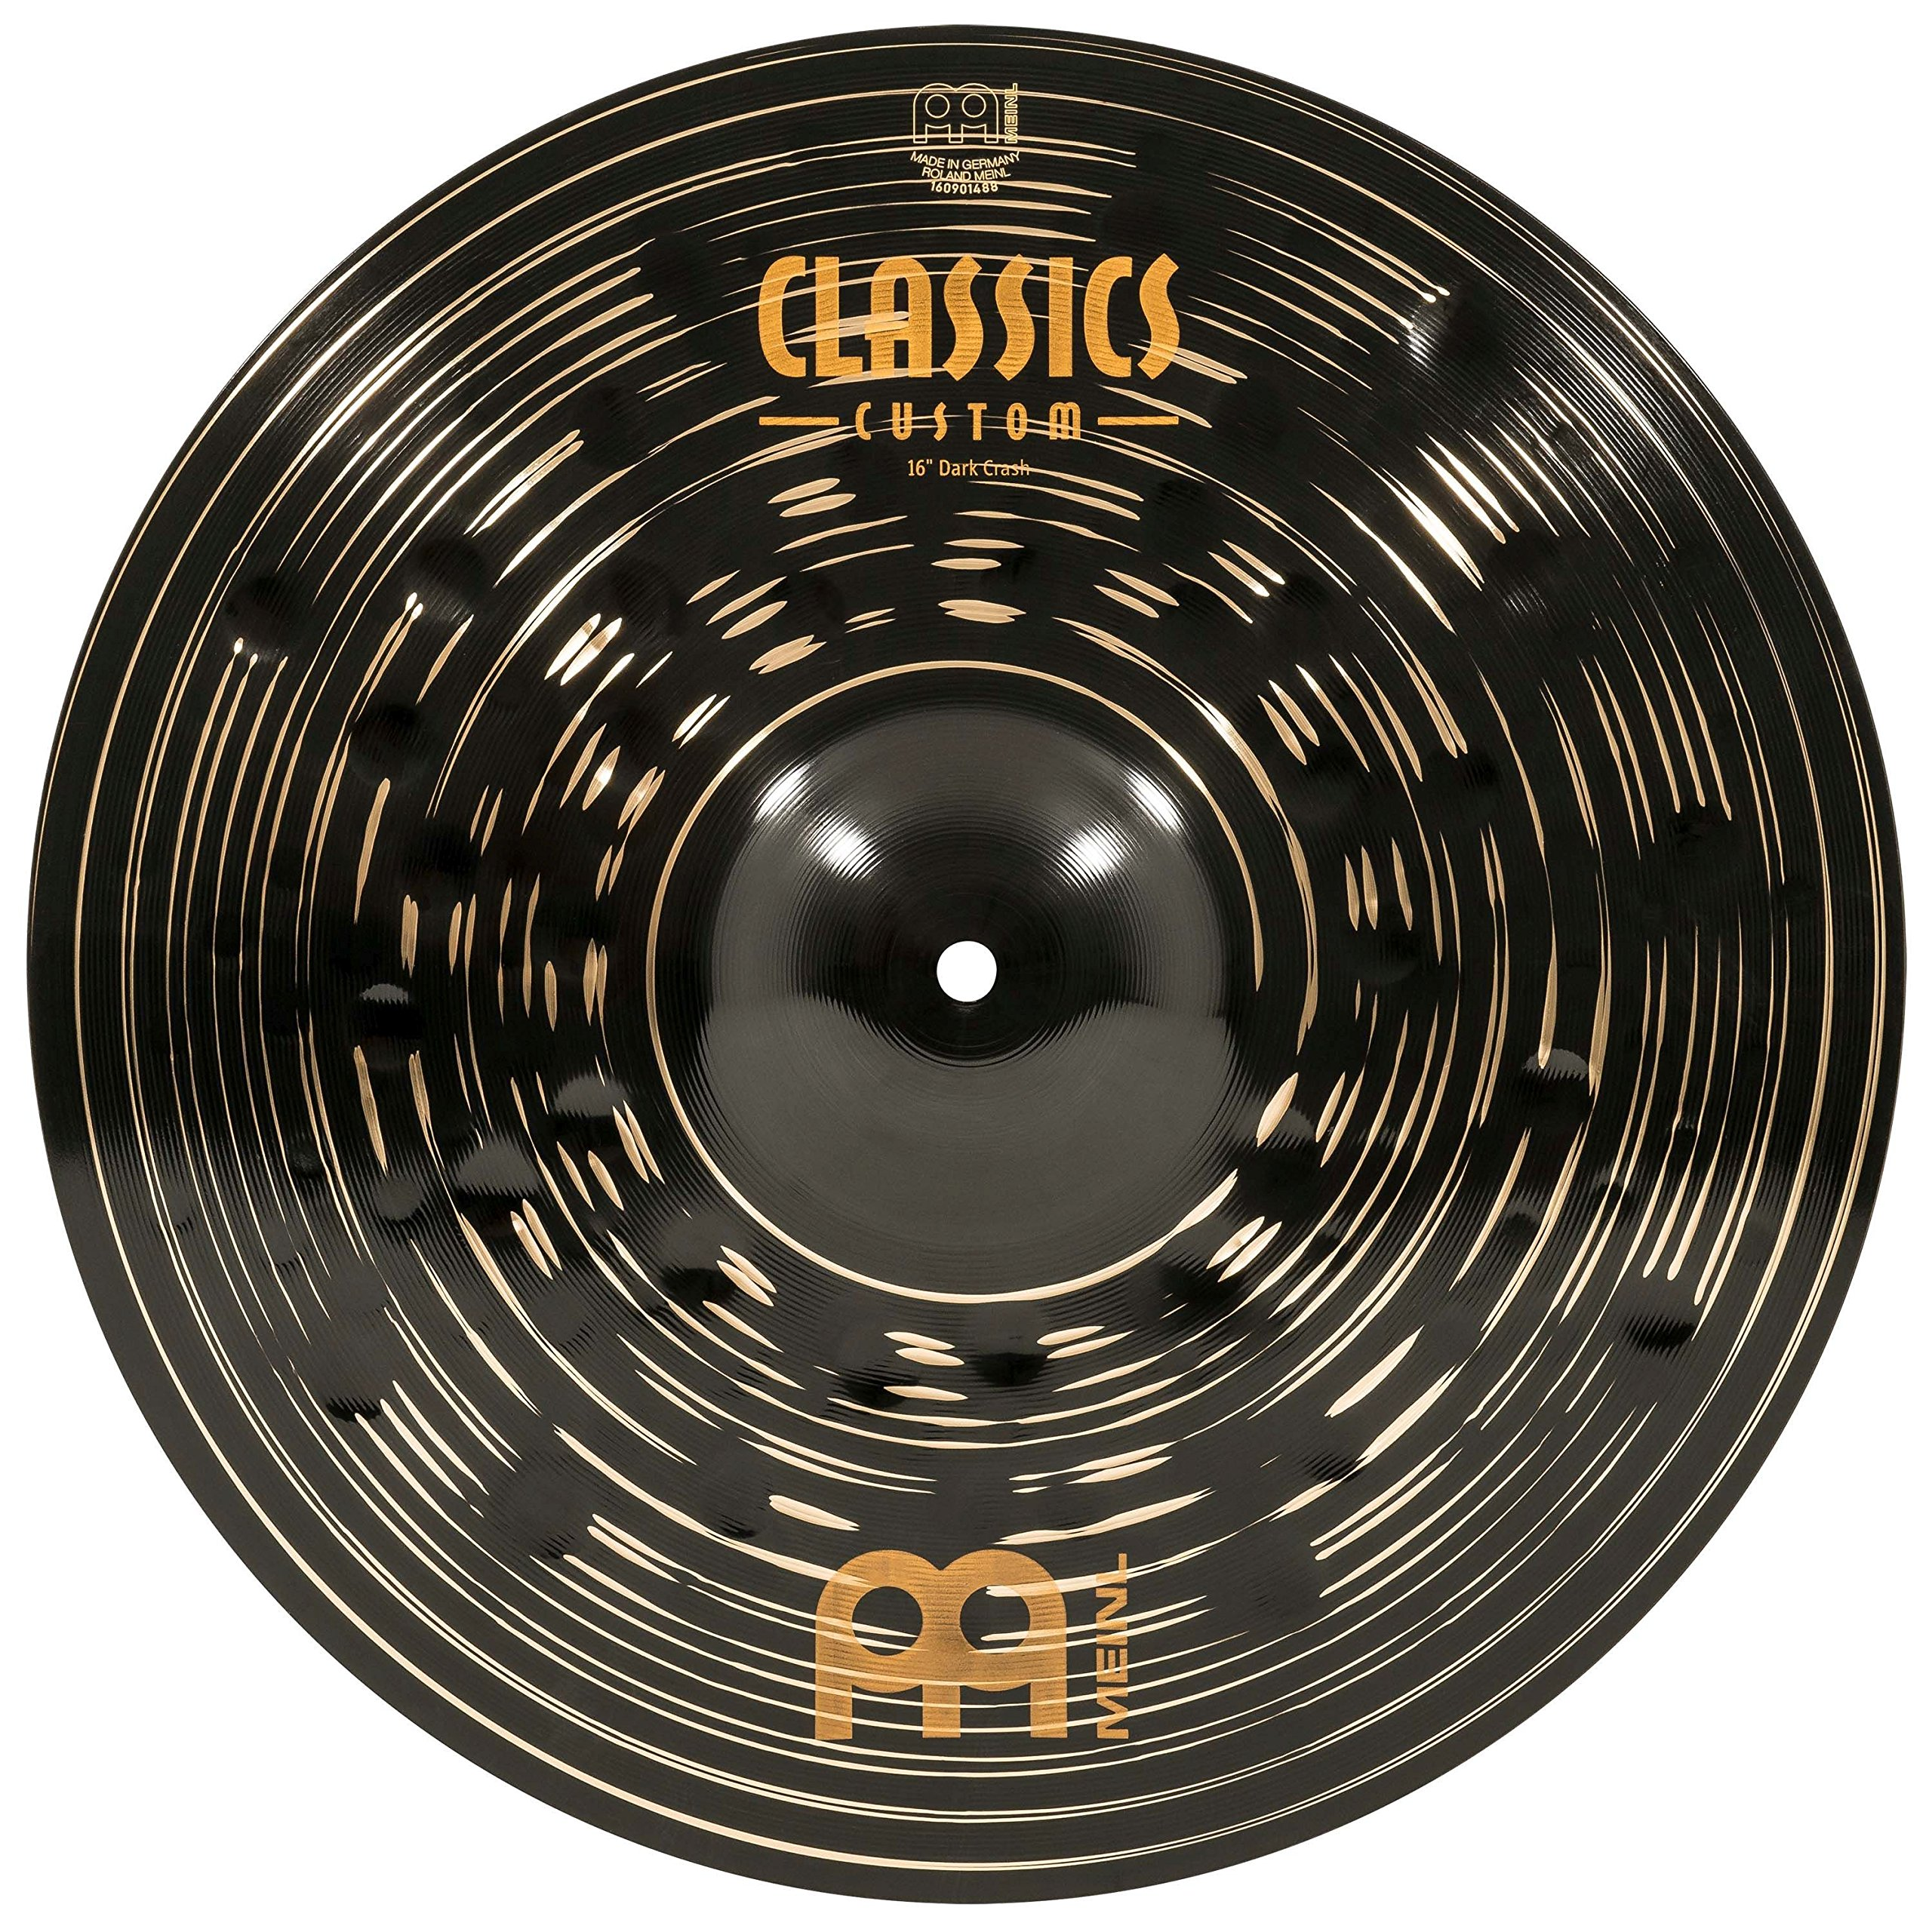 Meinl 16'' Crash Cymbal - Classics Custom Dark - Made in Germany, 2-YEAR WARRANTY (CC16DAC) by Meinl Cymbals